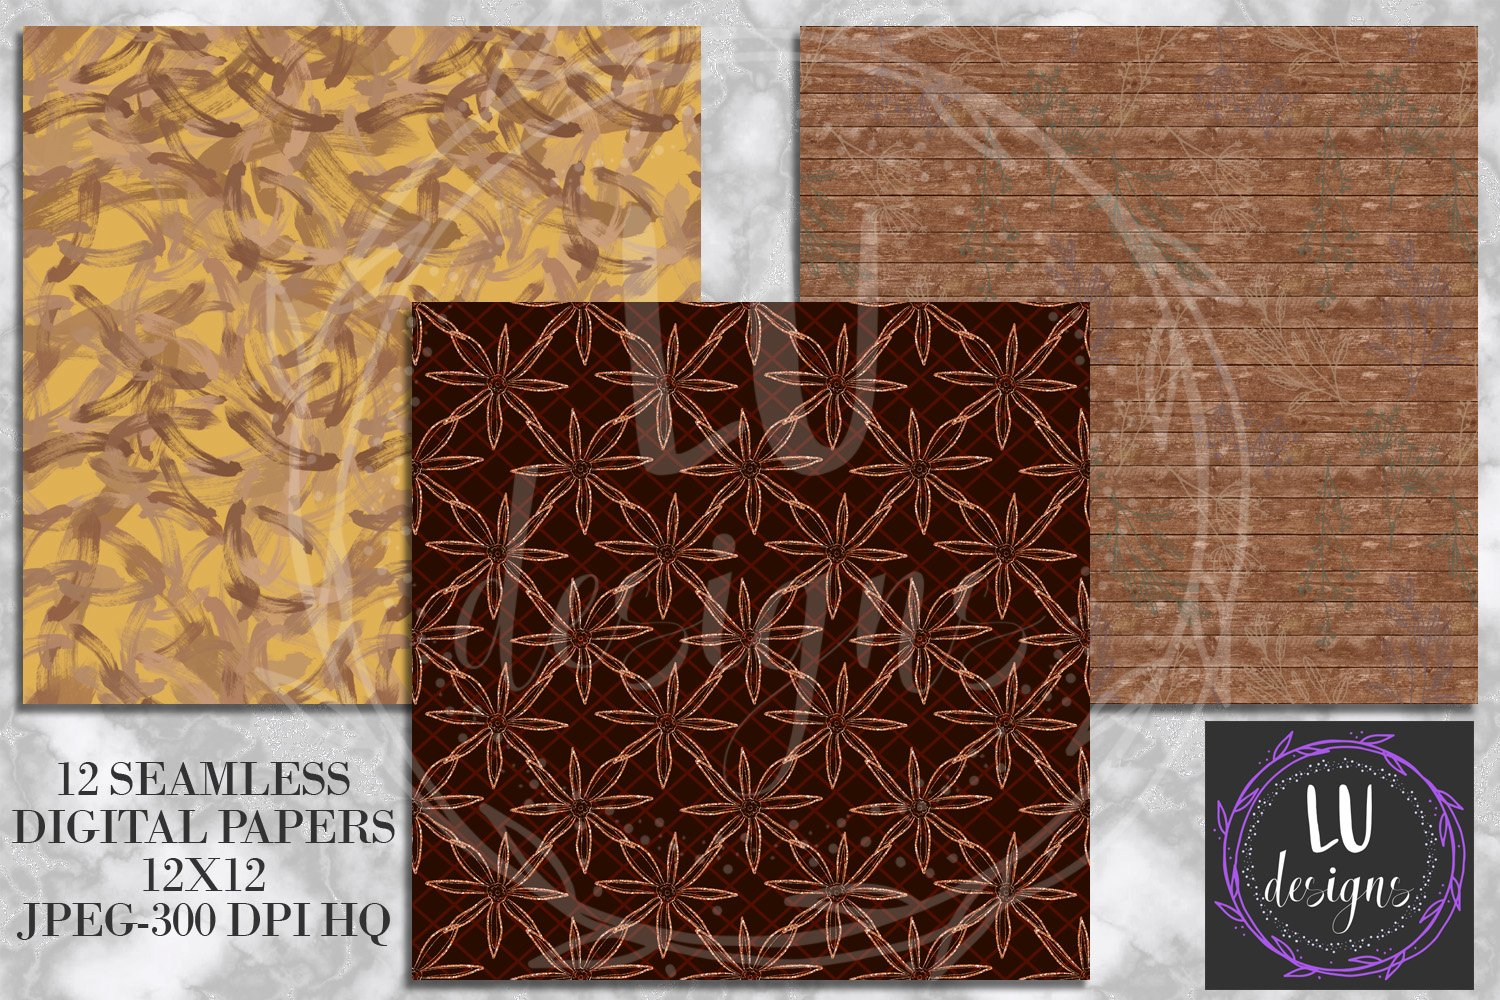 Cinnamon Spice Autumn Digital Paper, Fall Coffee Backgrounds example image 4